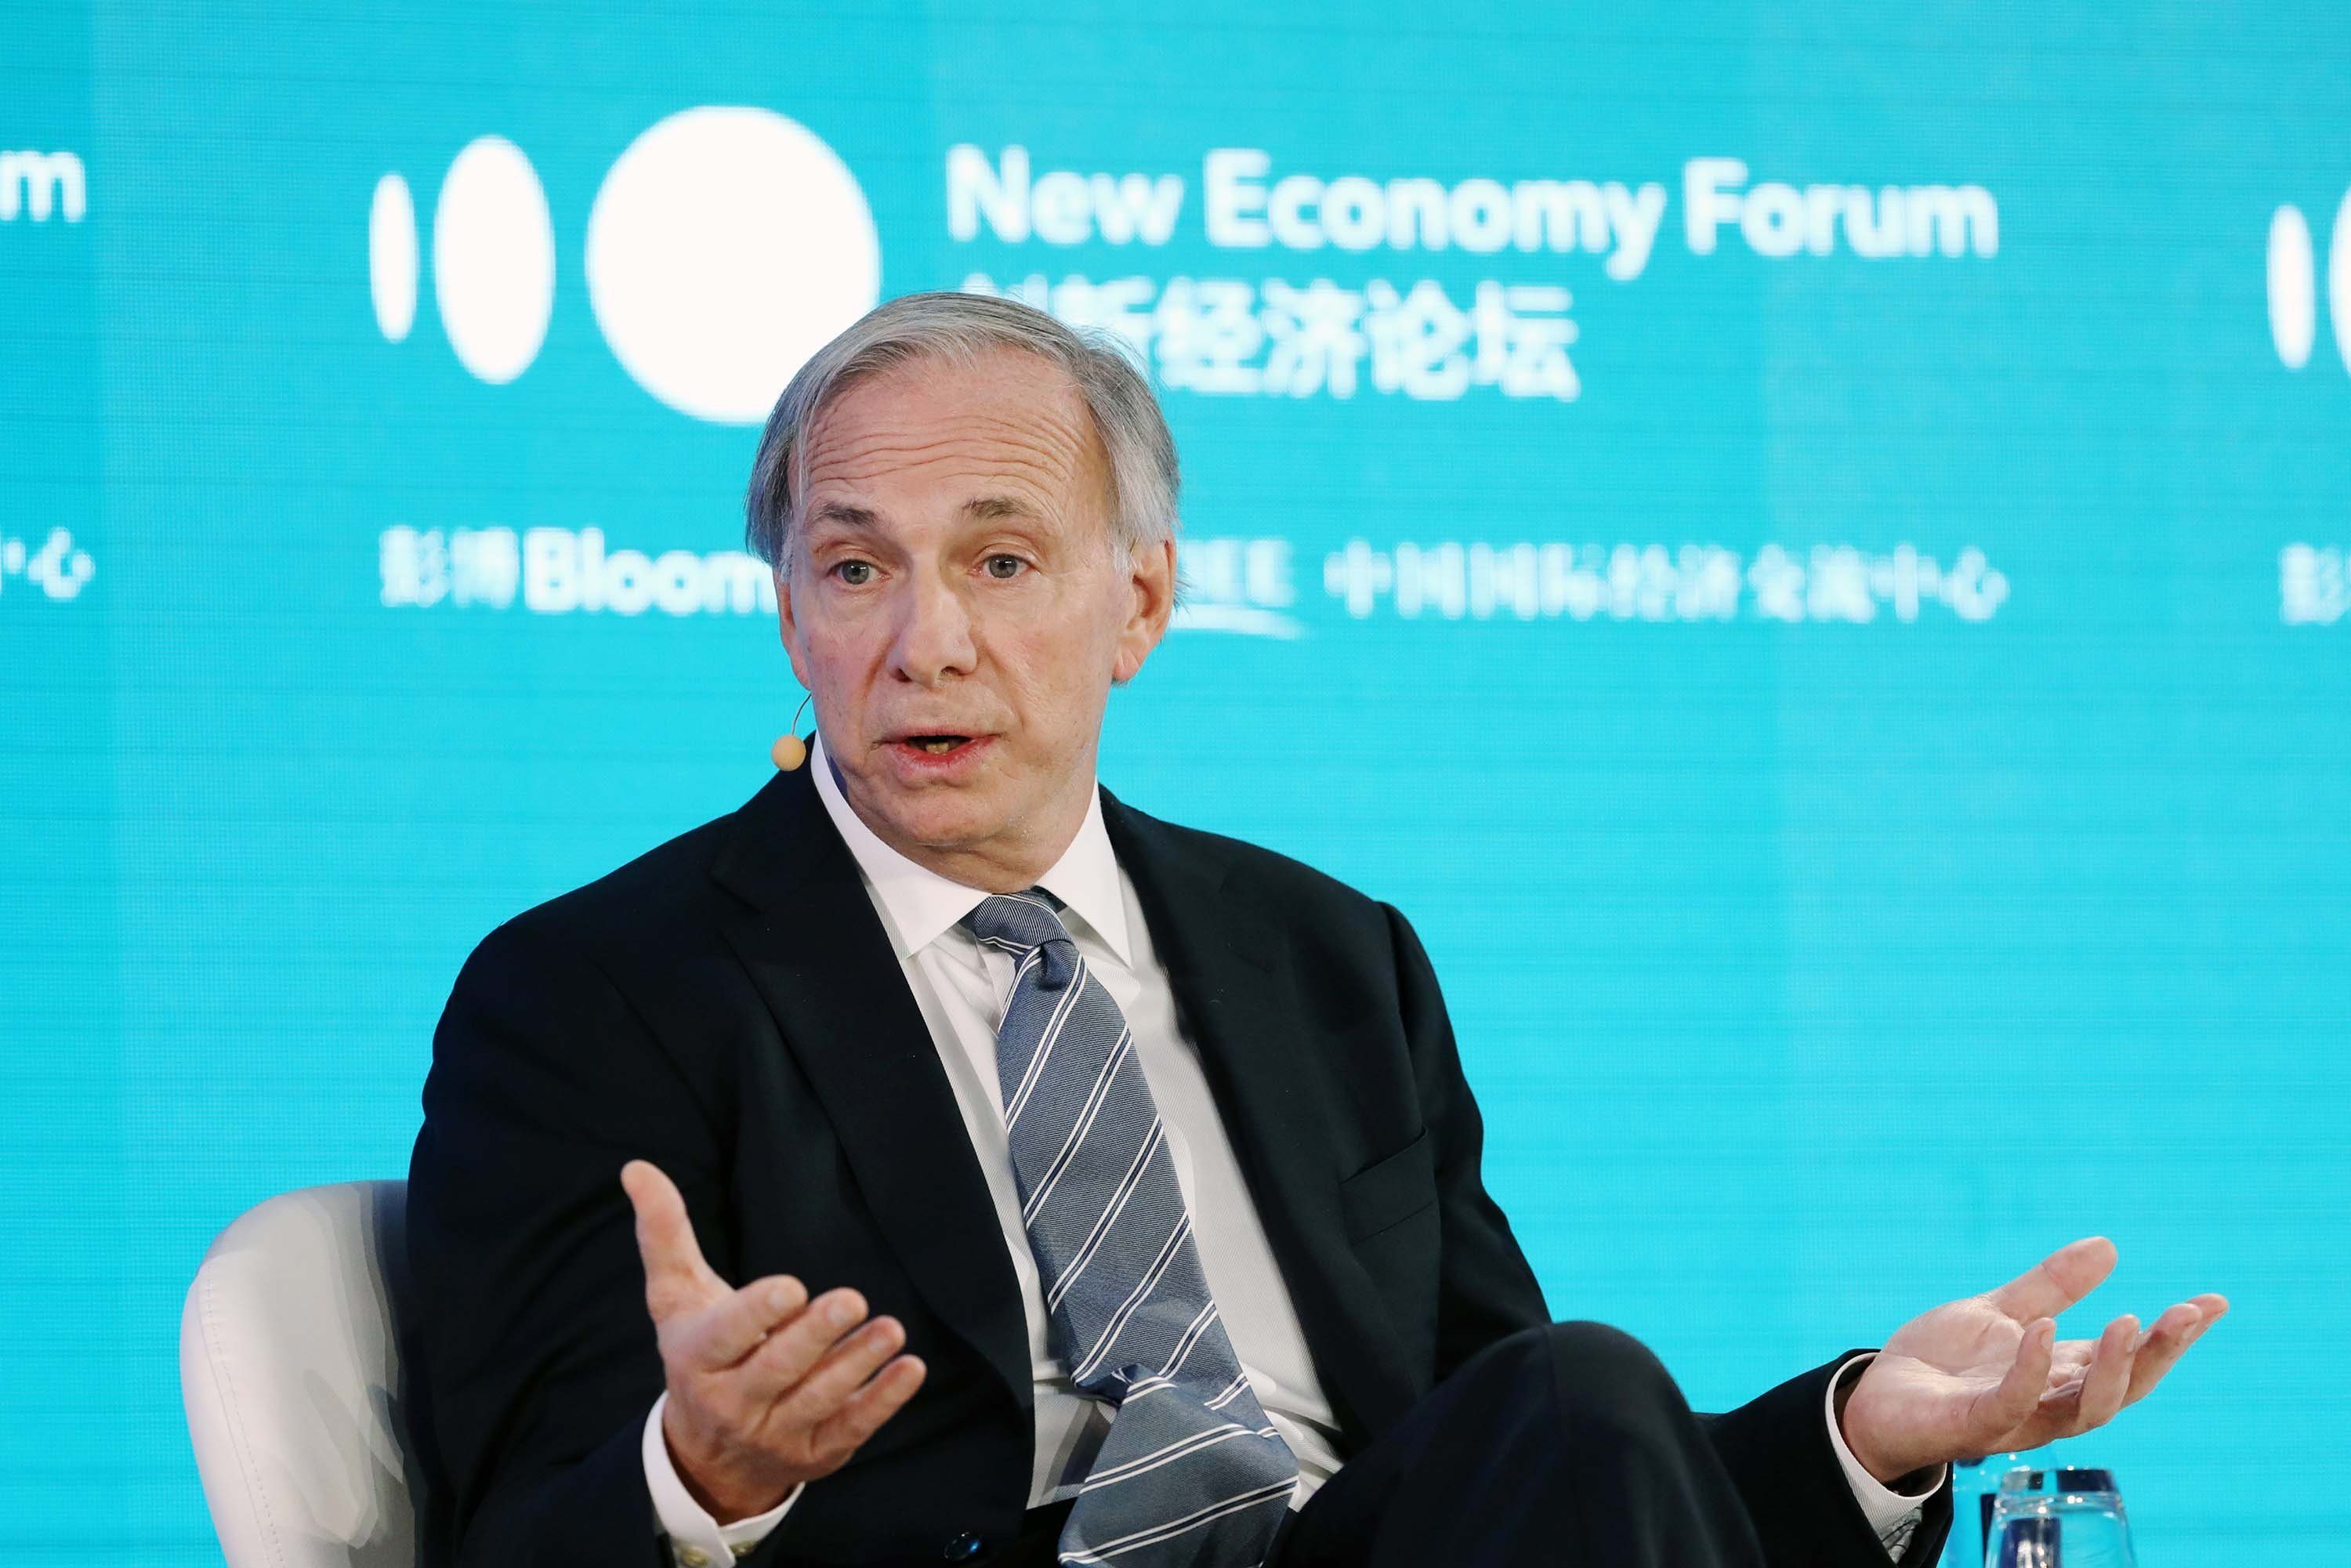 Ray Dalio says the global economy is heading for a 'great sag'